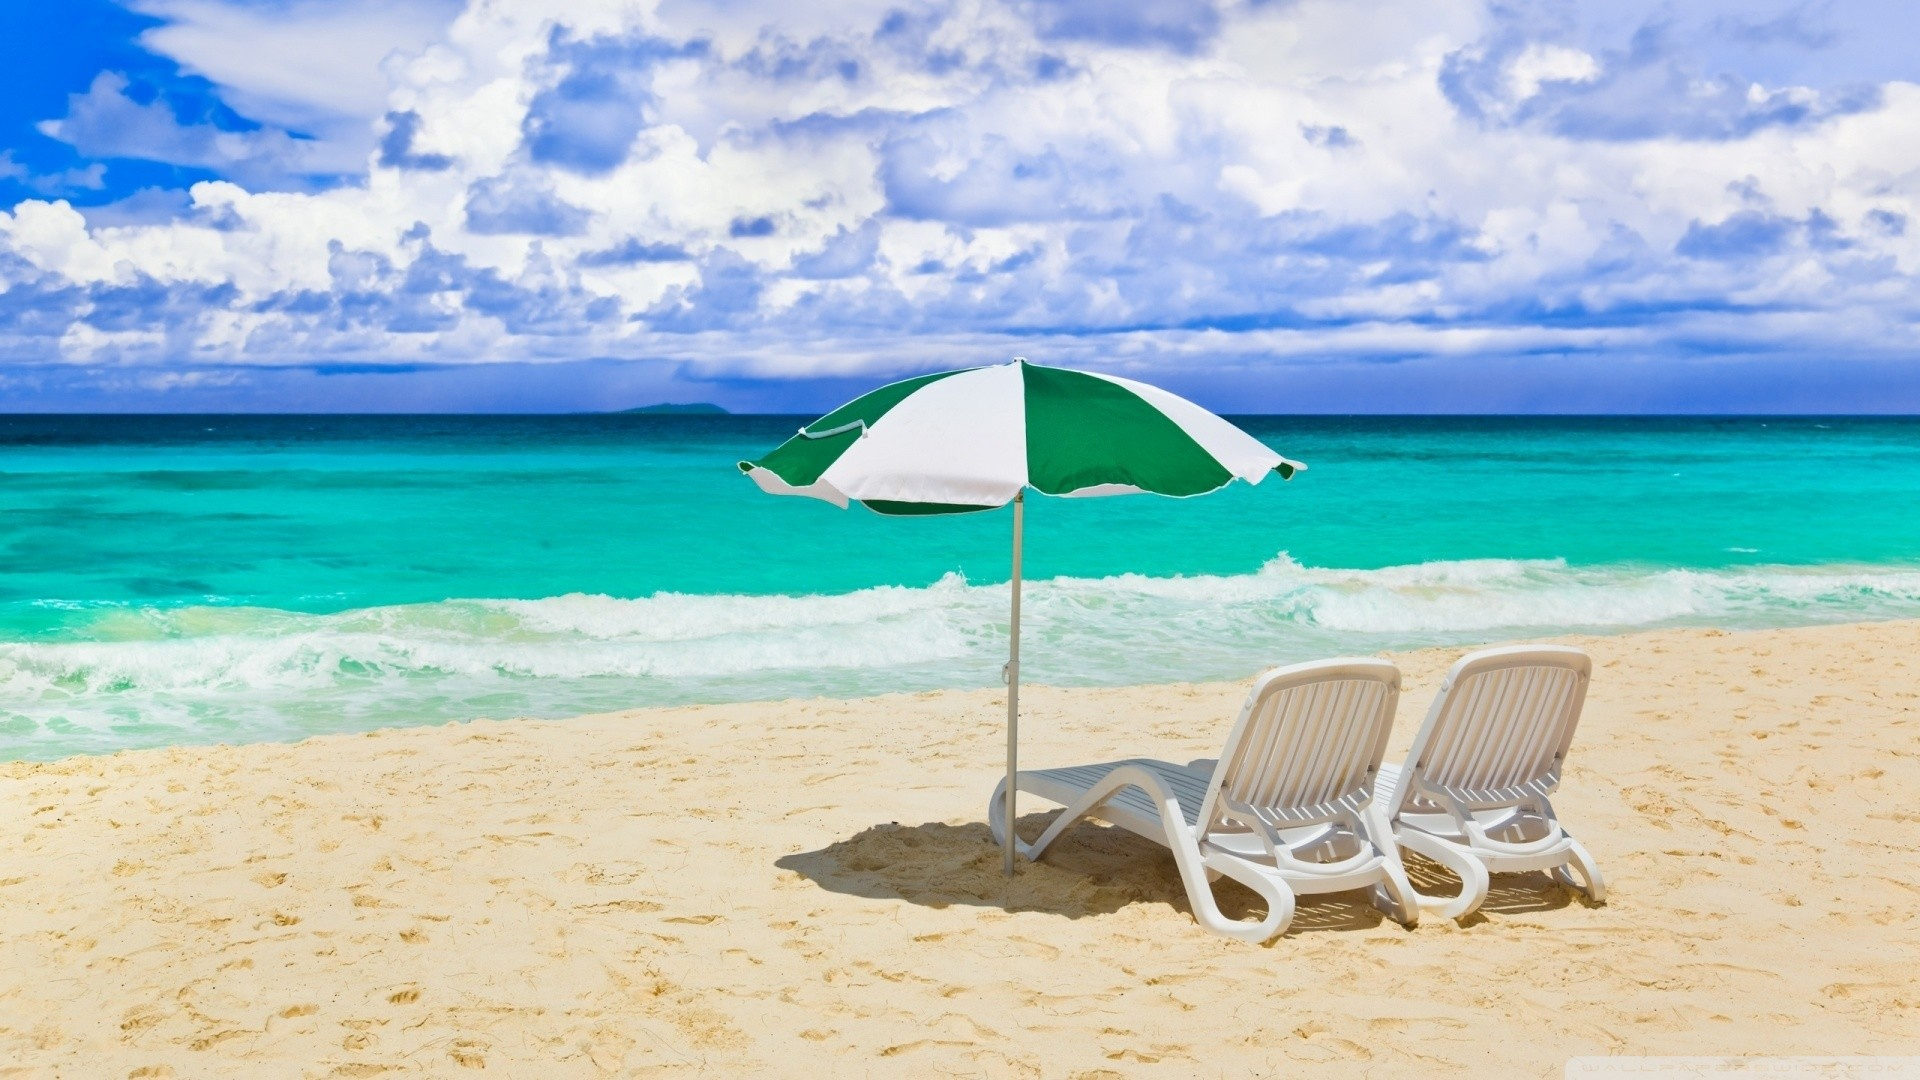 Sunny Beach Wallpapers High Quality Resolution